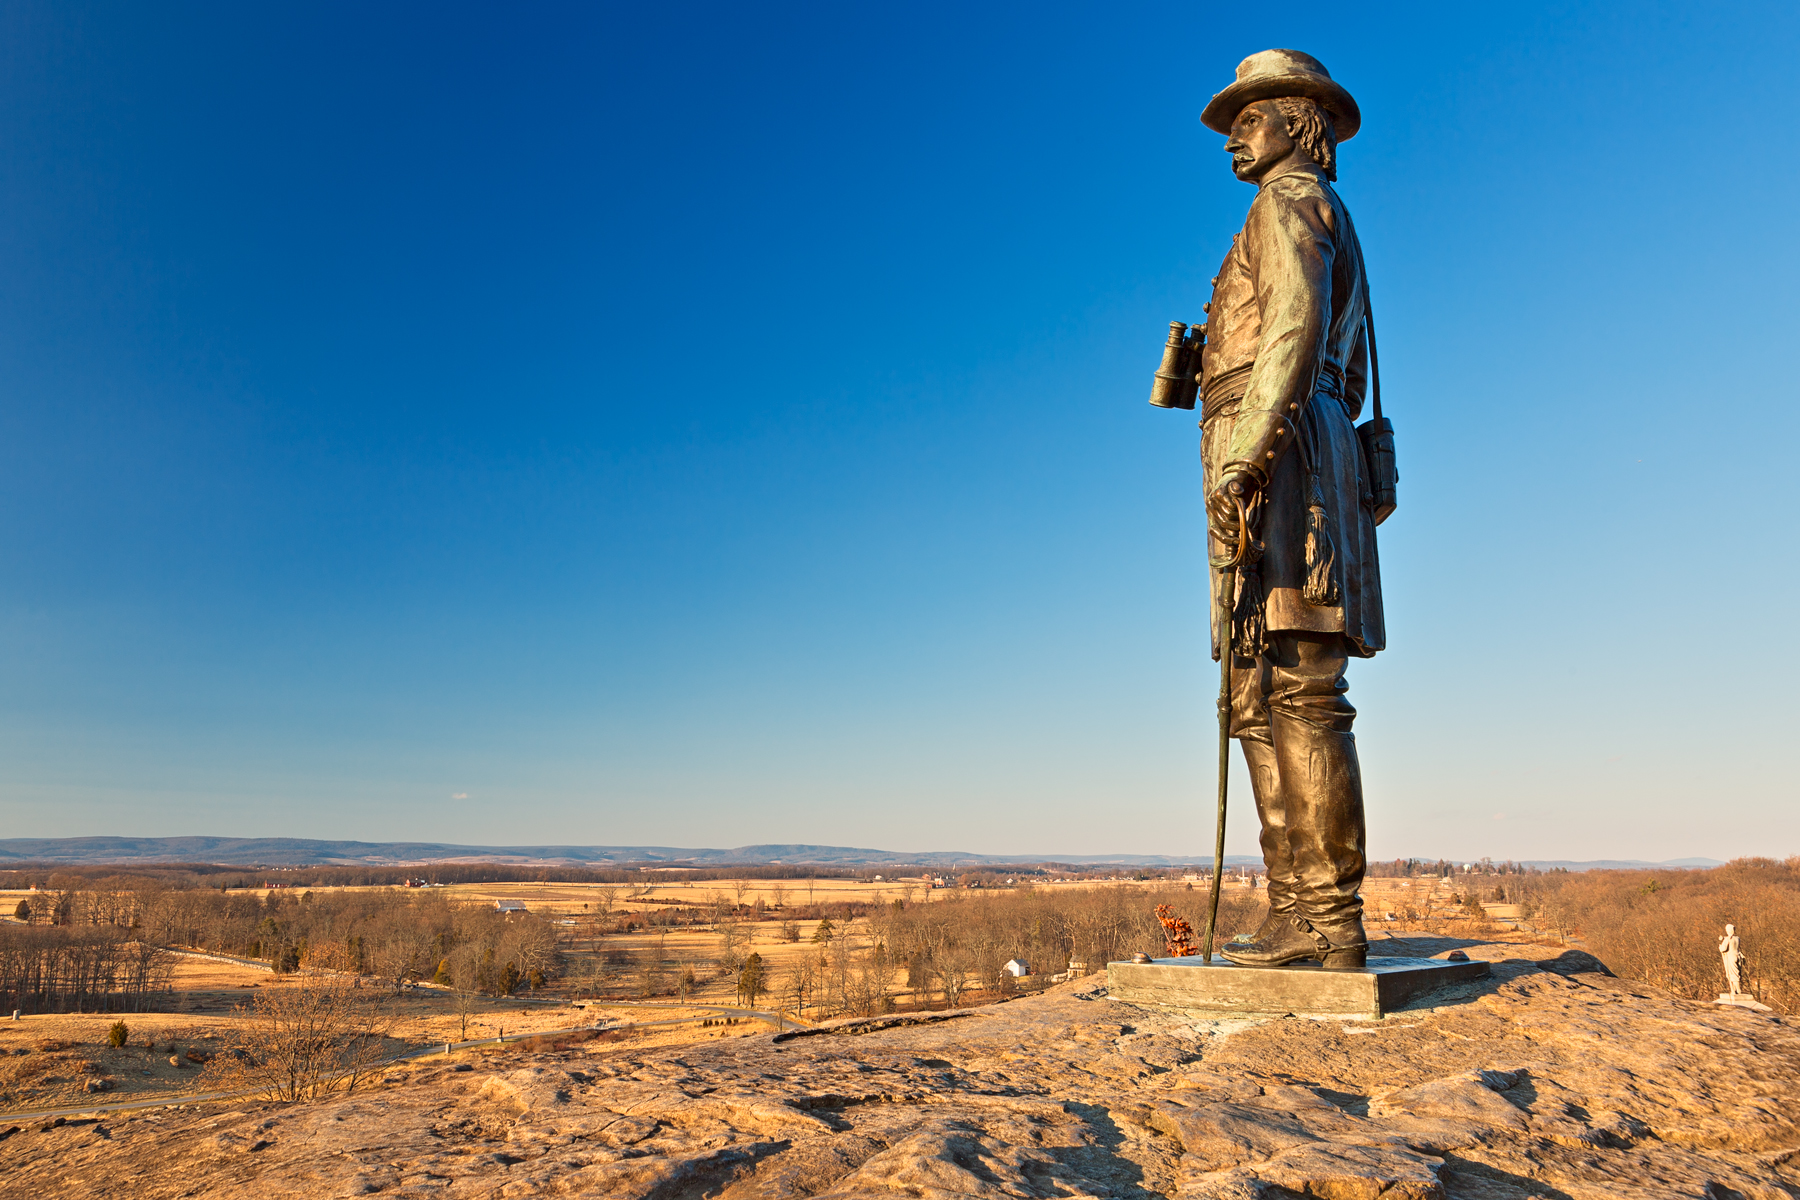 Little Round Top Overlook - HDR, Age, Road, Sculpture, Scenic, HQ Photo